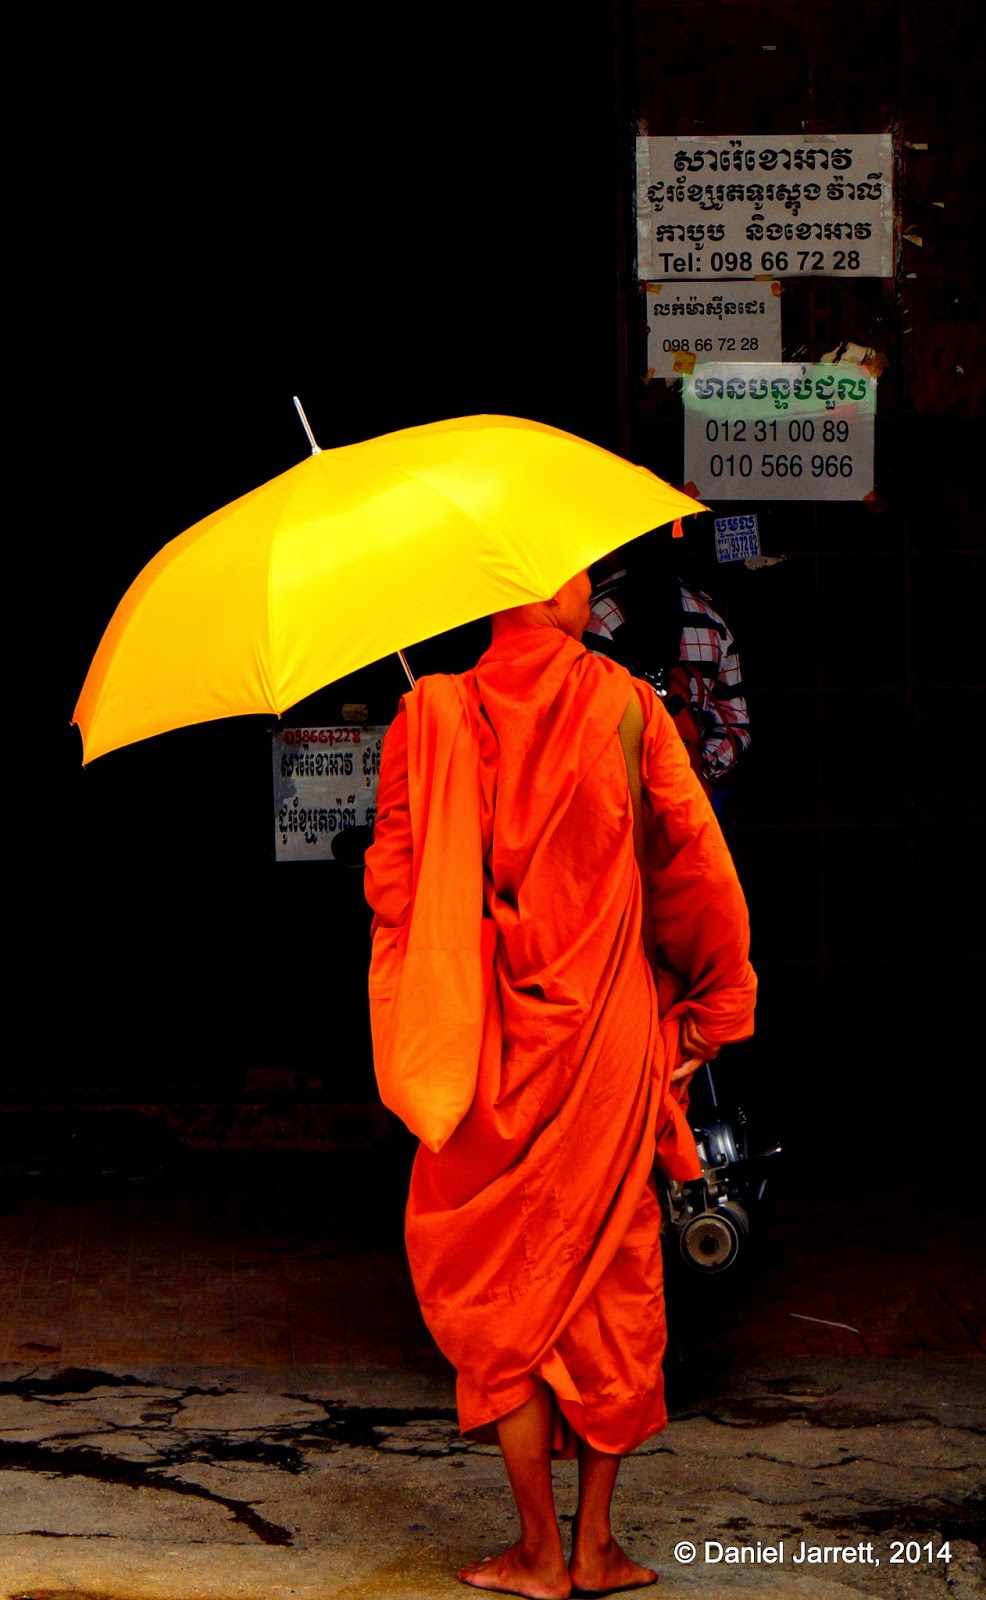 Monk on his morning alms, Phnom Penh, Cambodia